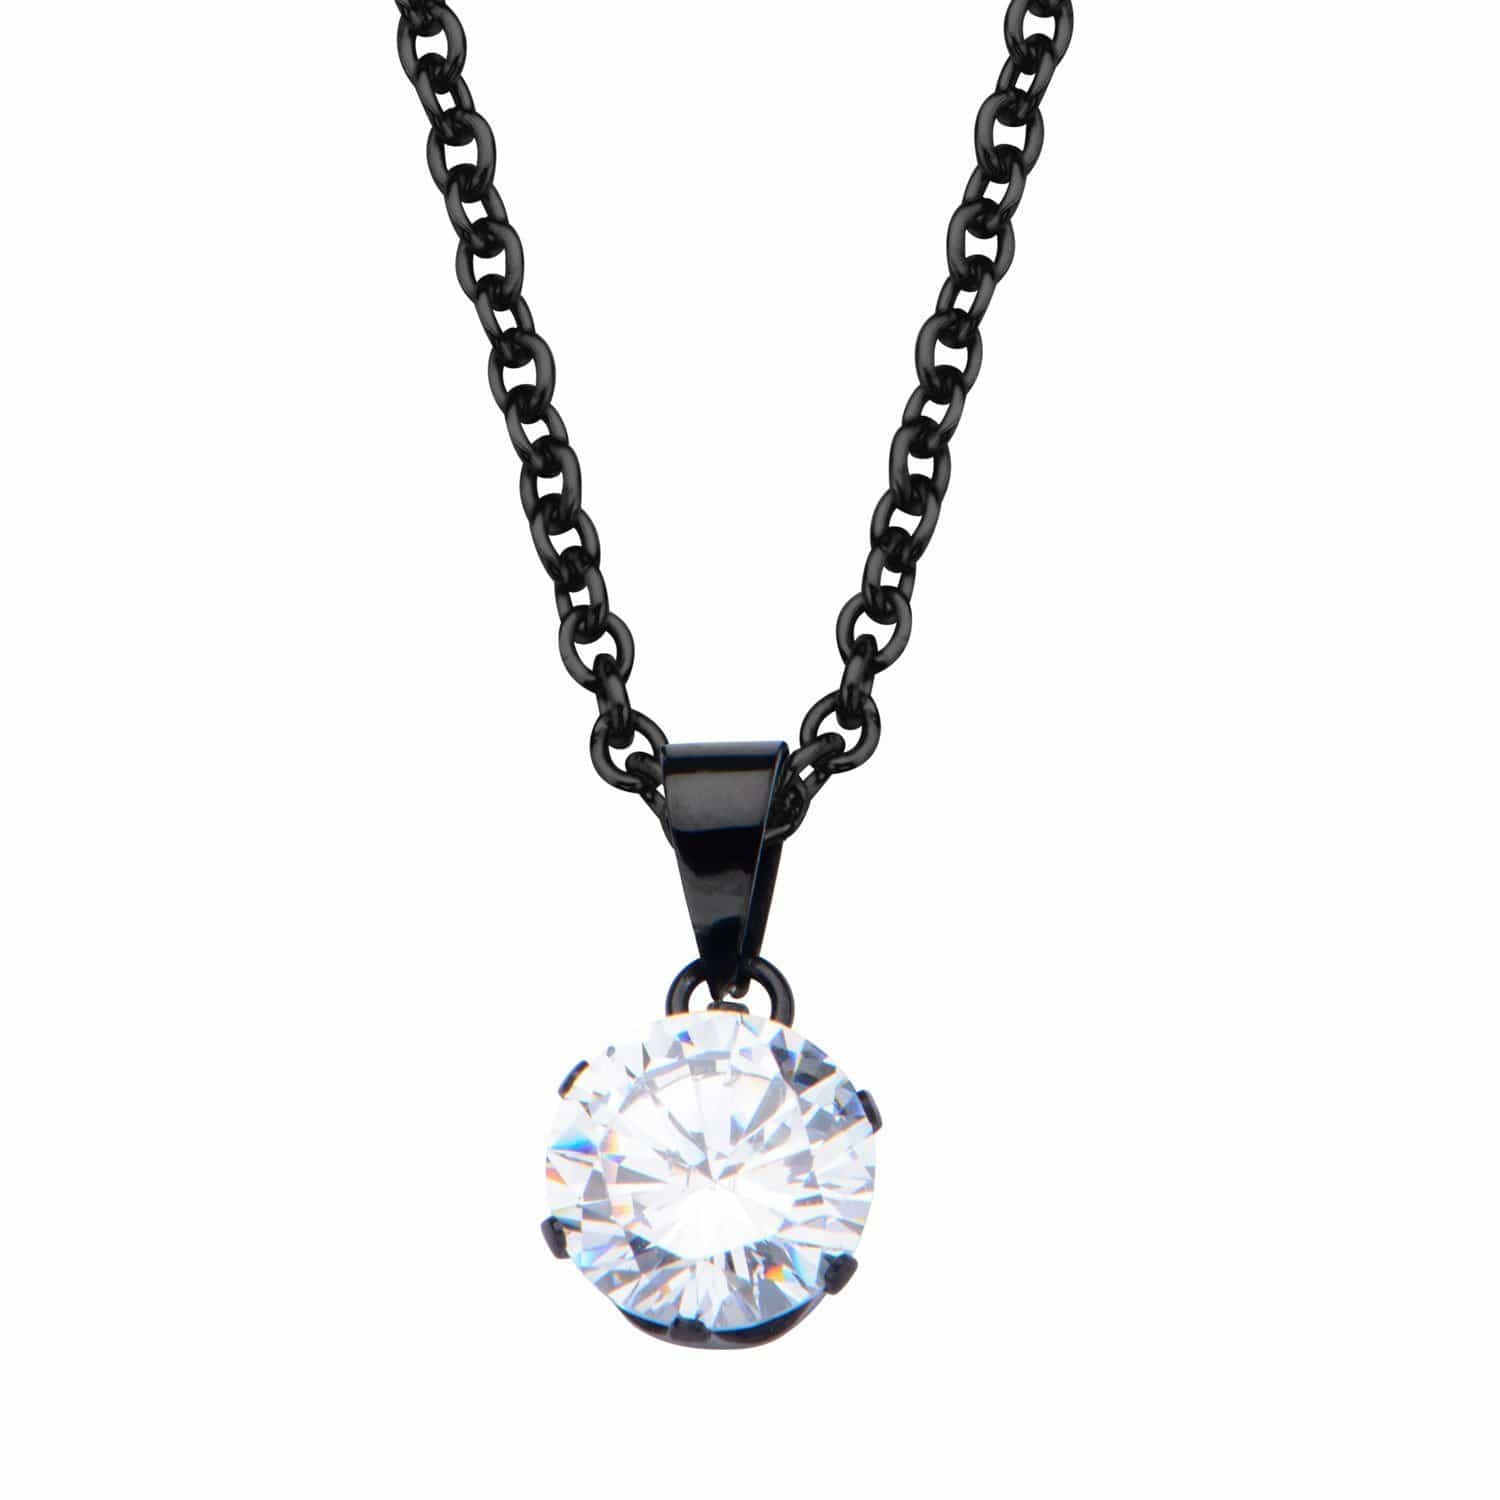 Black Stainless Steel 8mm Solitaire CZ Pendant Pendants